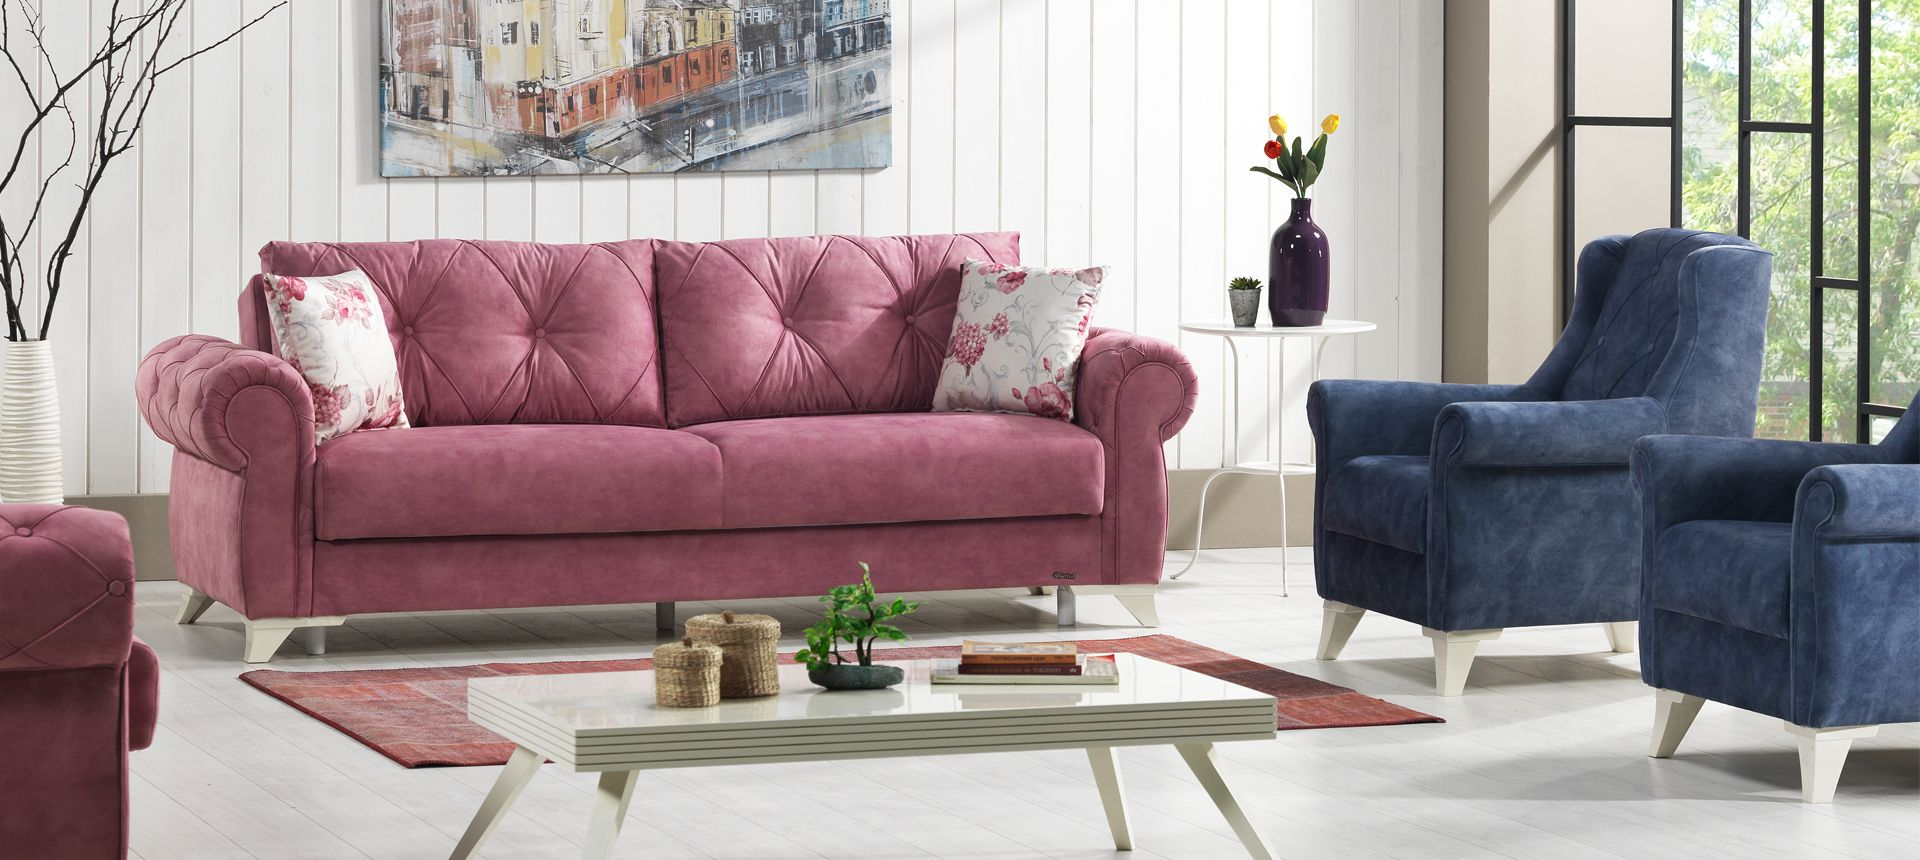 Stupendous Living Room Functional Sofas Futons Mito Convertible Creativecarmelina Interior Chair Design Creativecarmelinacom